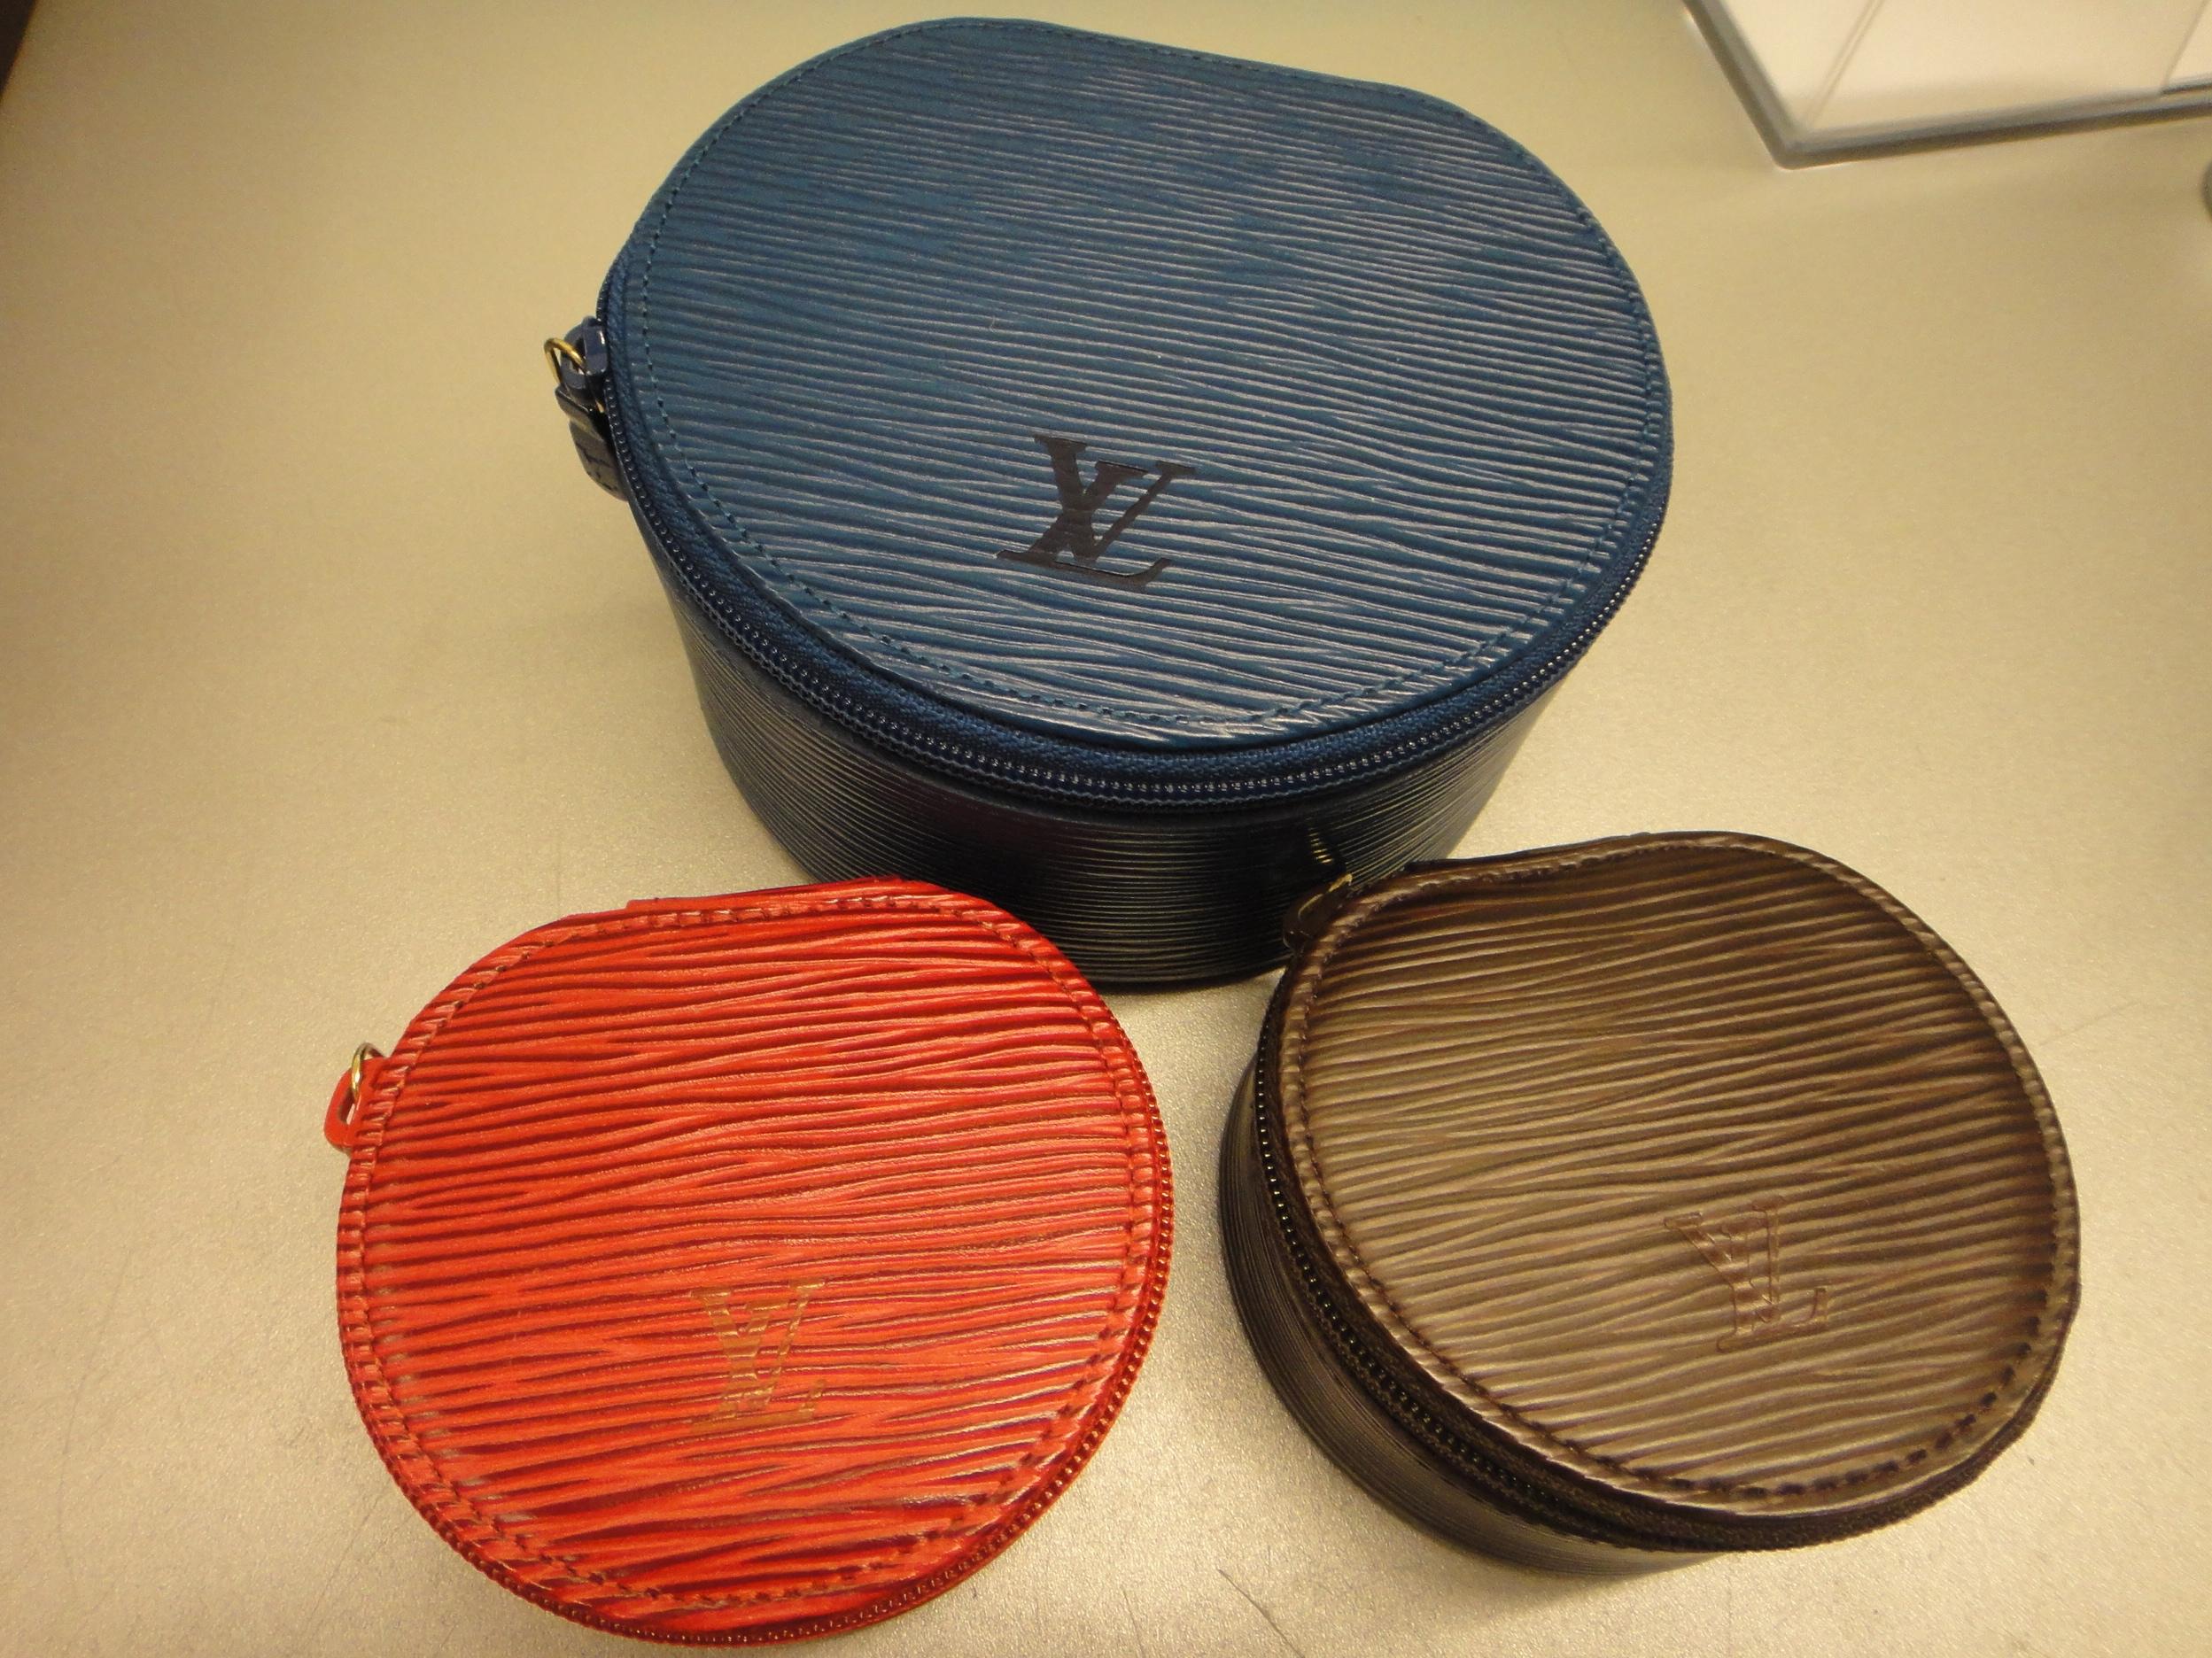 Louis Vuitton Epi Jewelry Cases